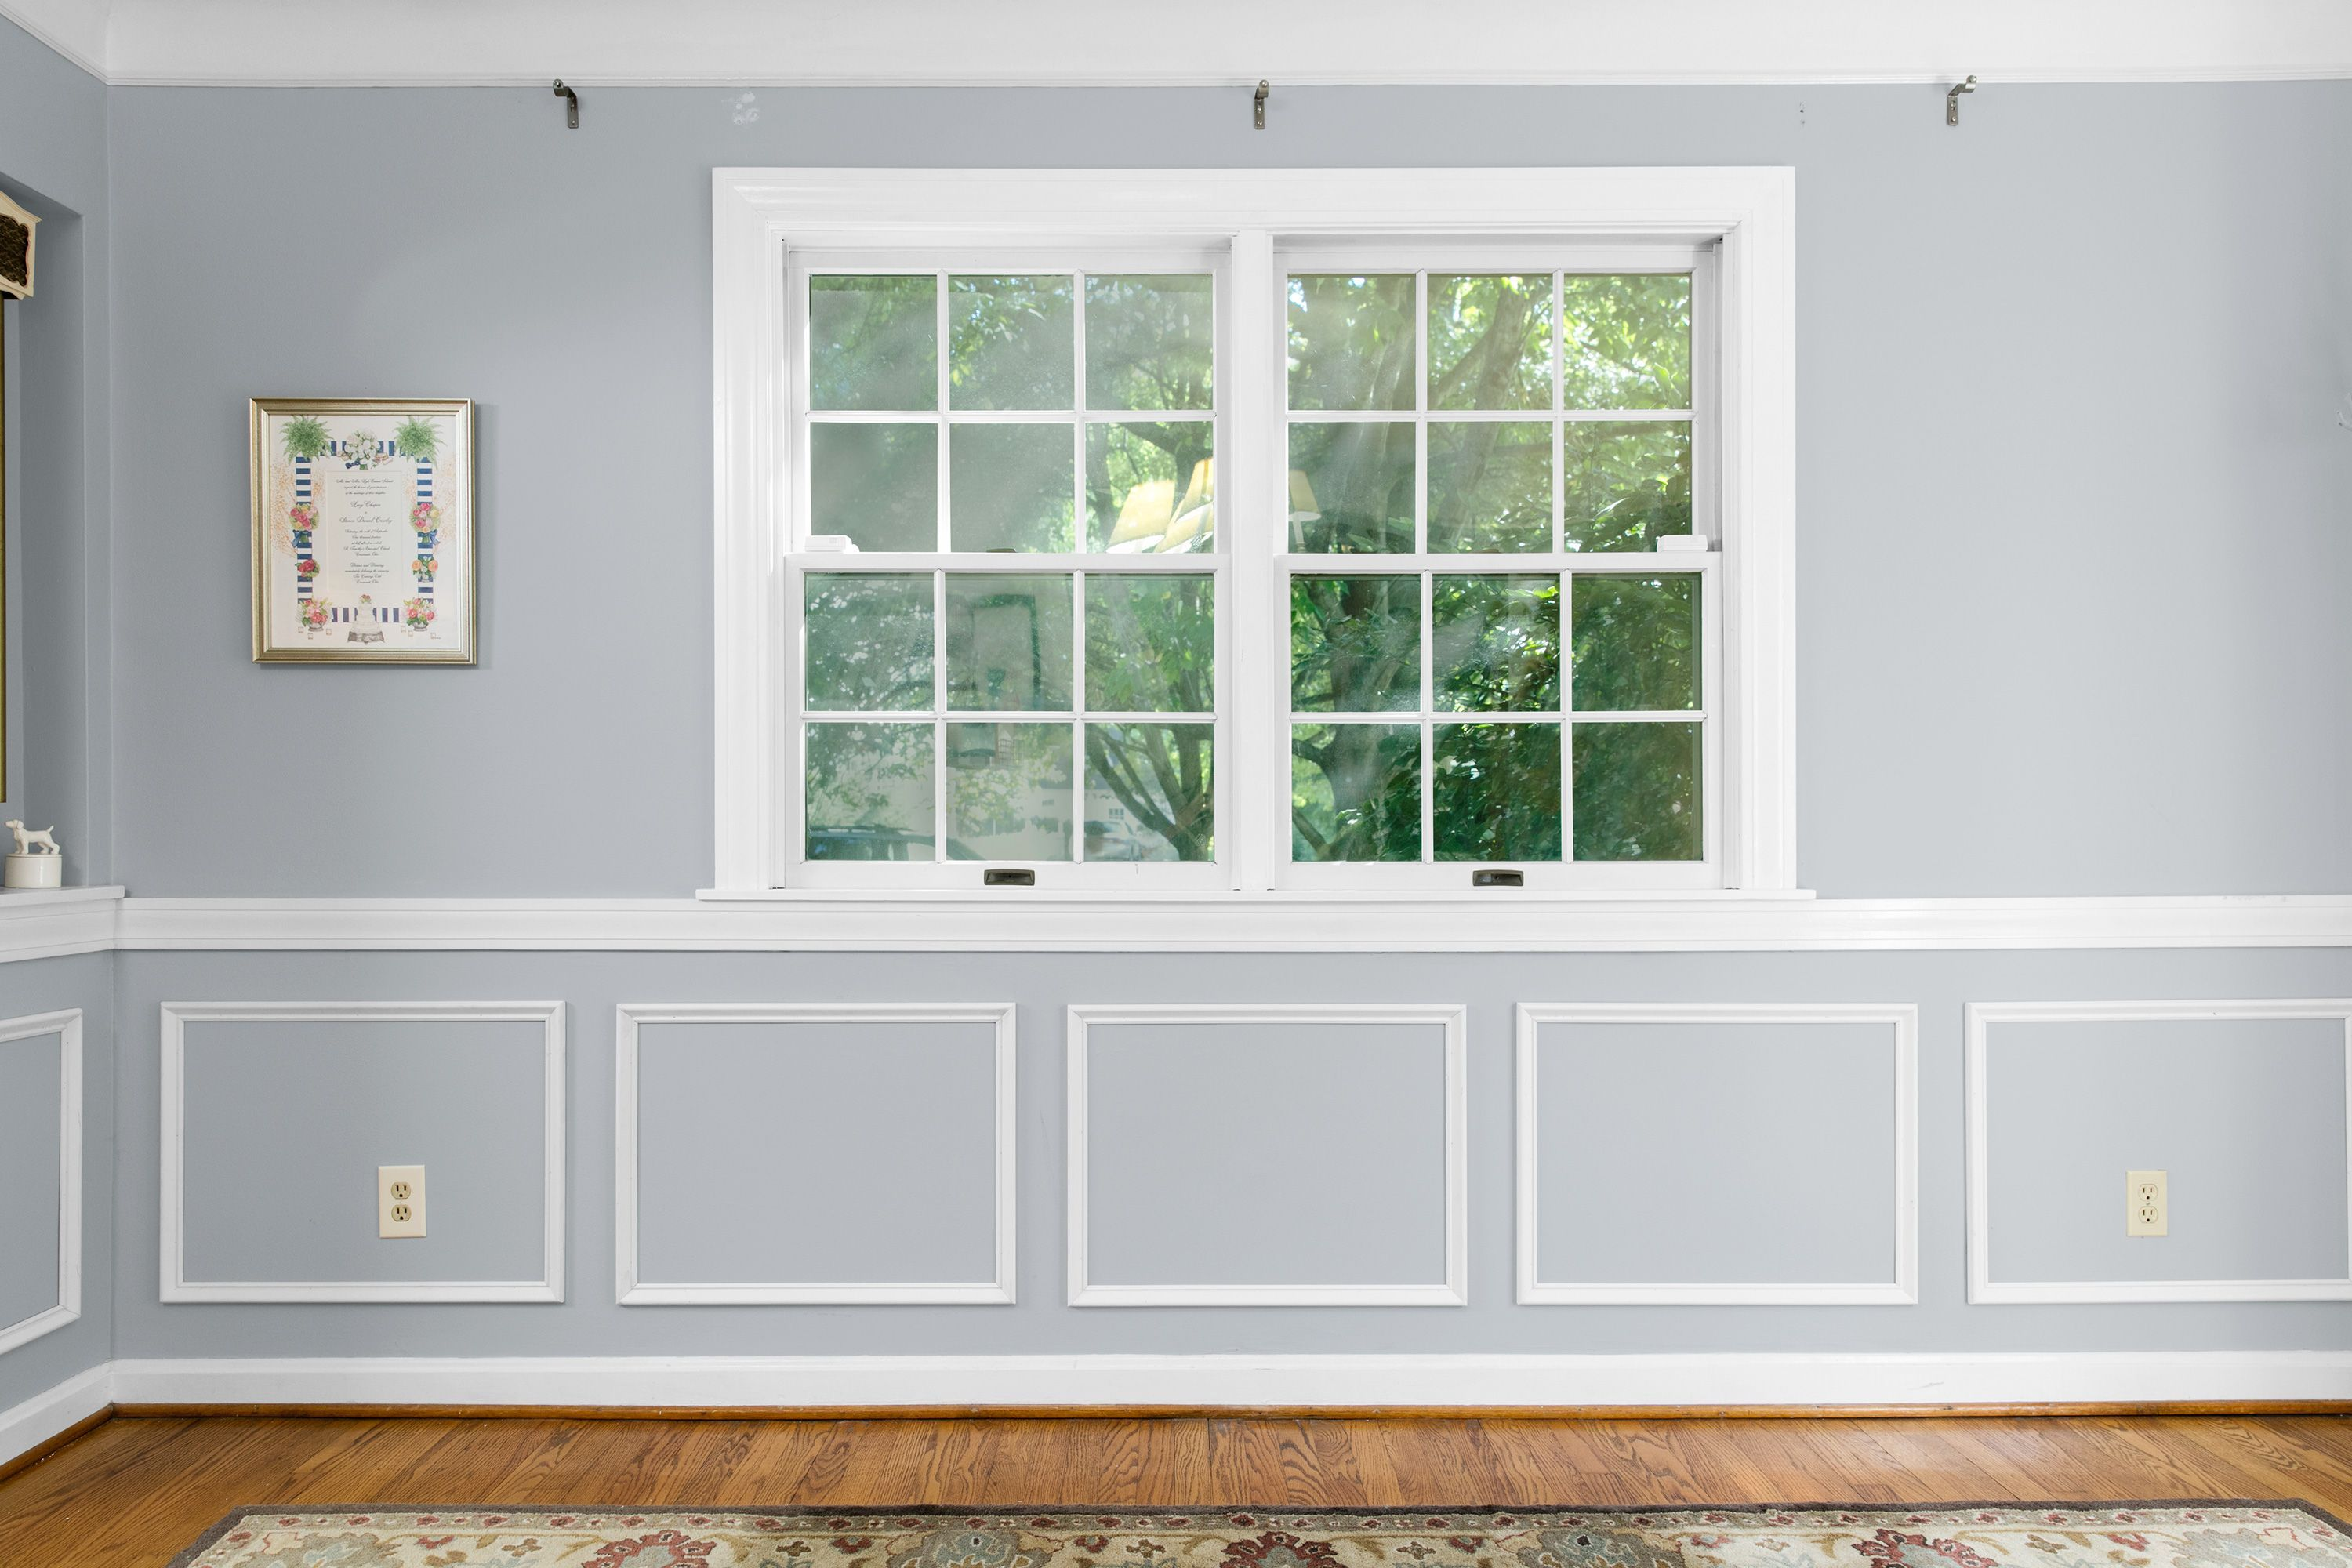 12 Ineffable Wainscoting Rustic Ideas In 2020 Wainscoting Height Wainscoting Styles Installing Wainscoting